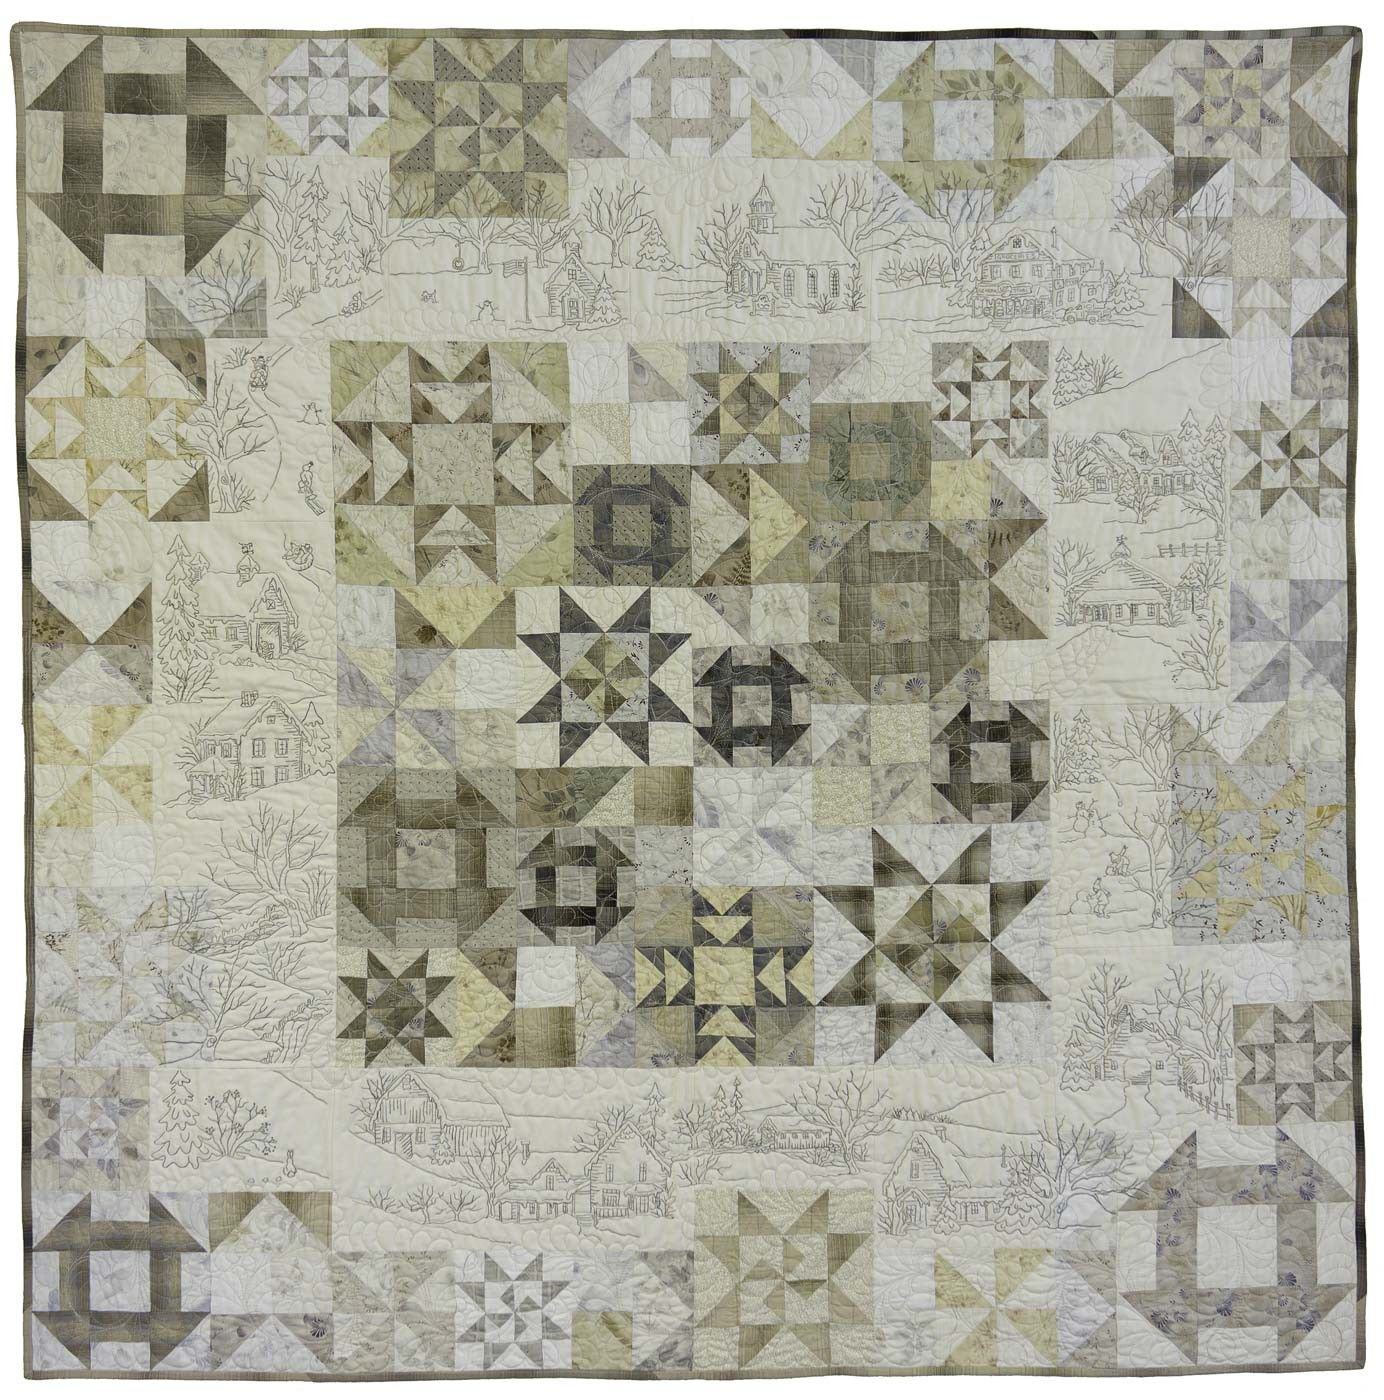 Snow Days by Meg Hawkey of Crabapple Hill Studio - magnificent ... : embroidered quilts patterns - Adamdwight.com